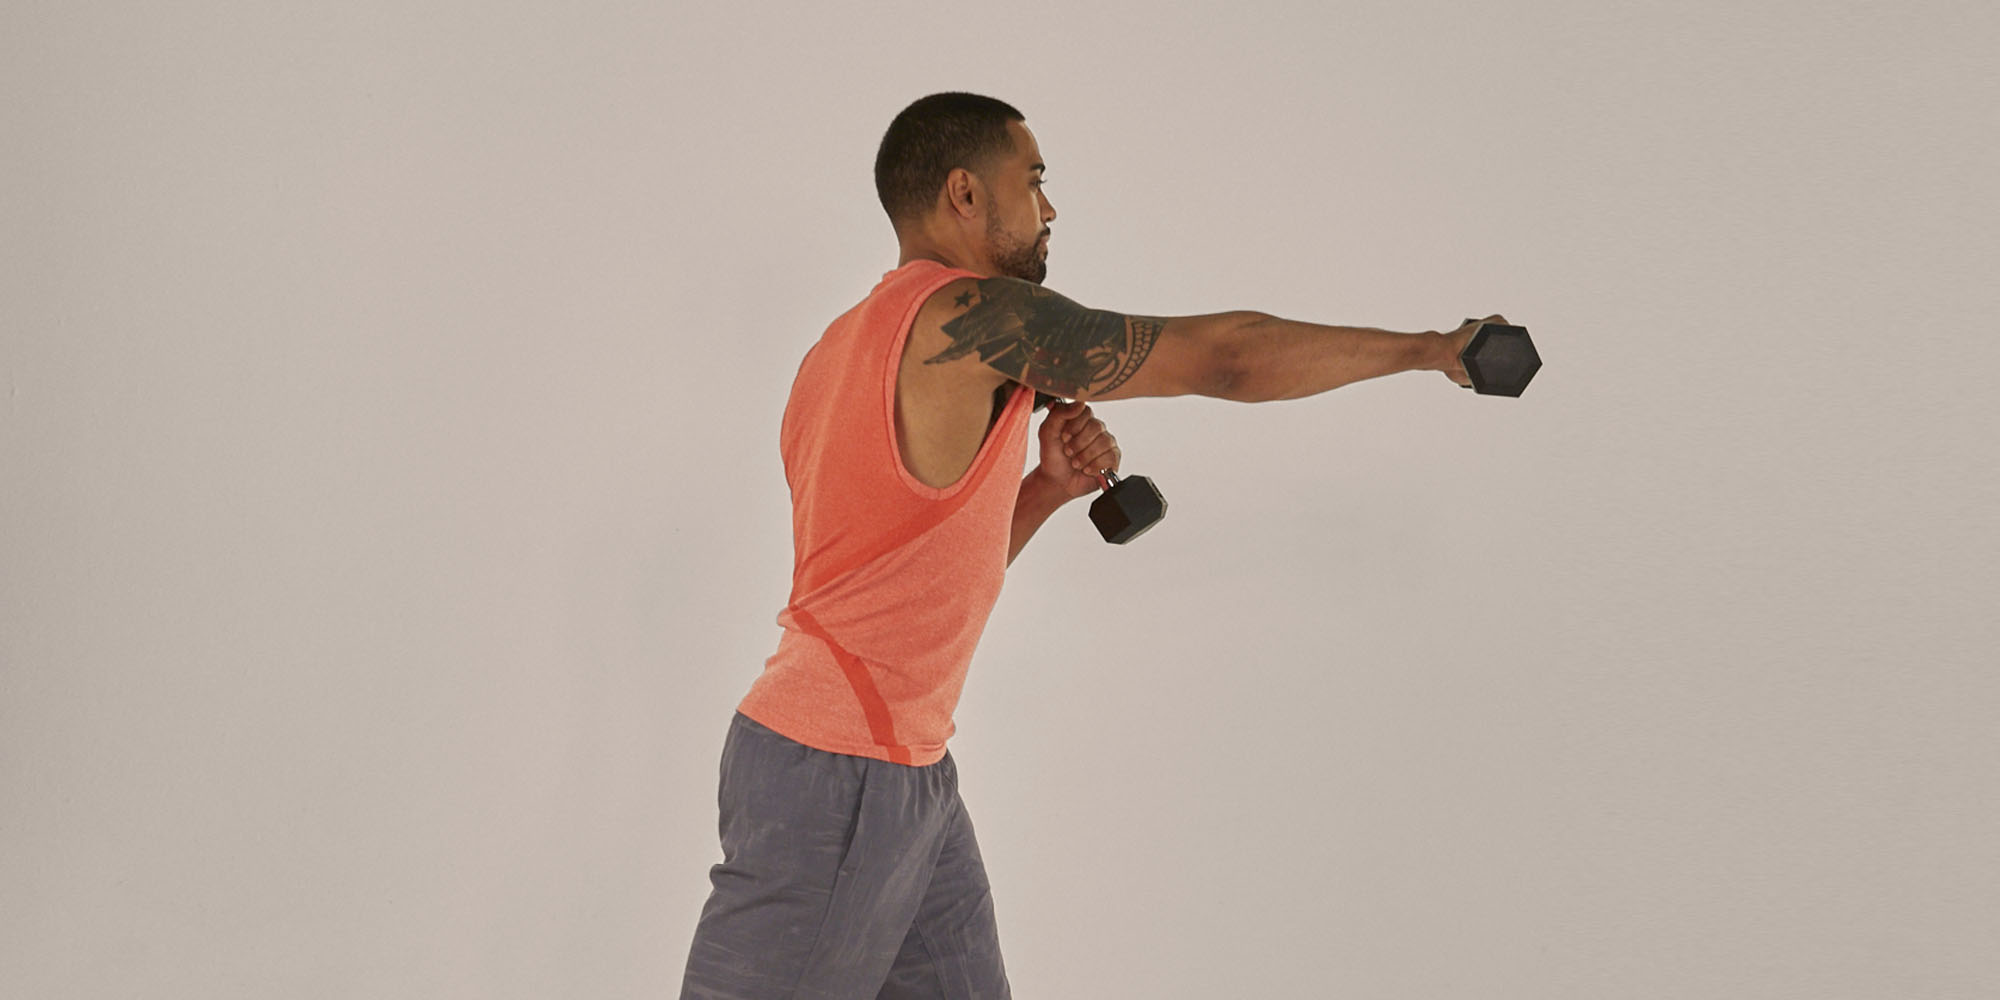 How To Do the Standing Rotational Punch